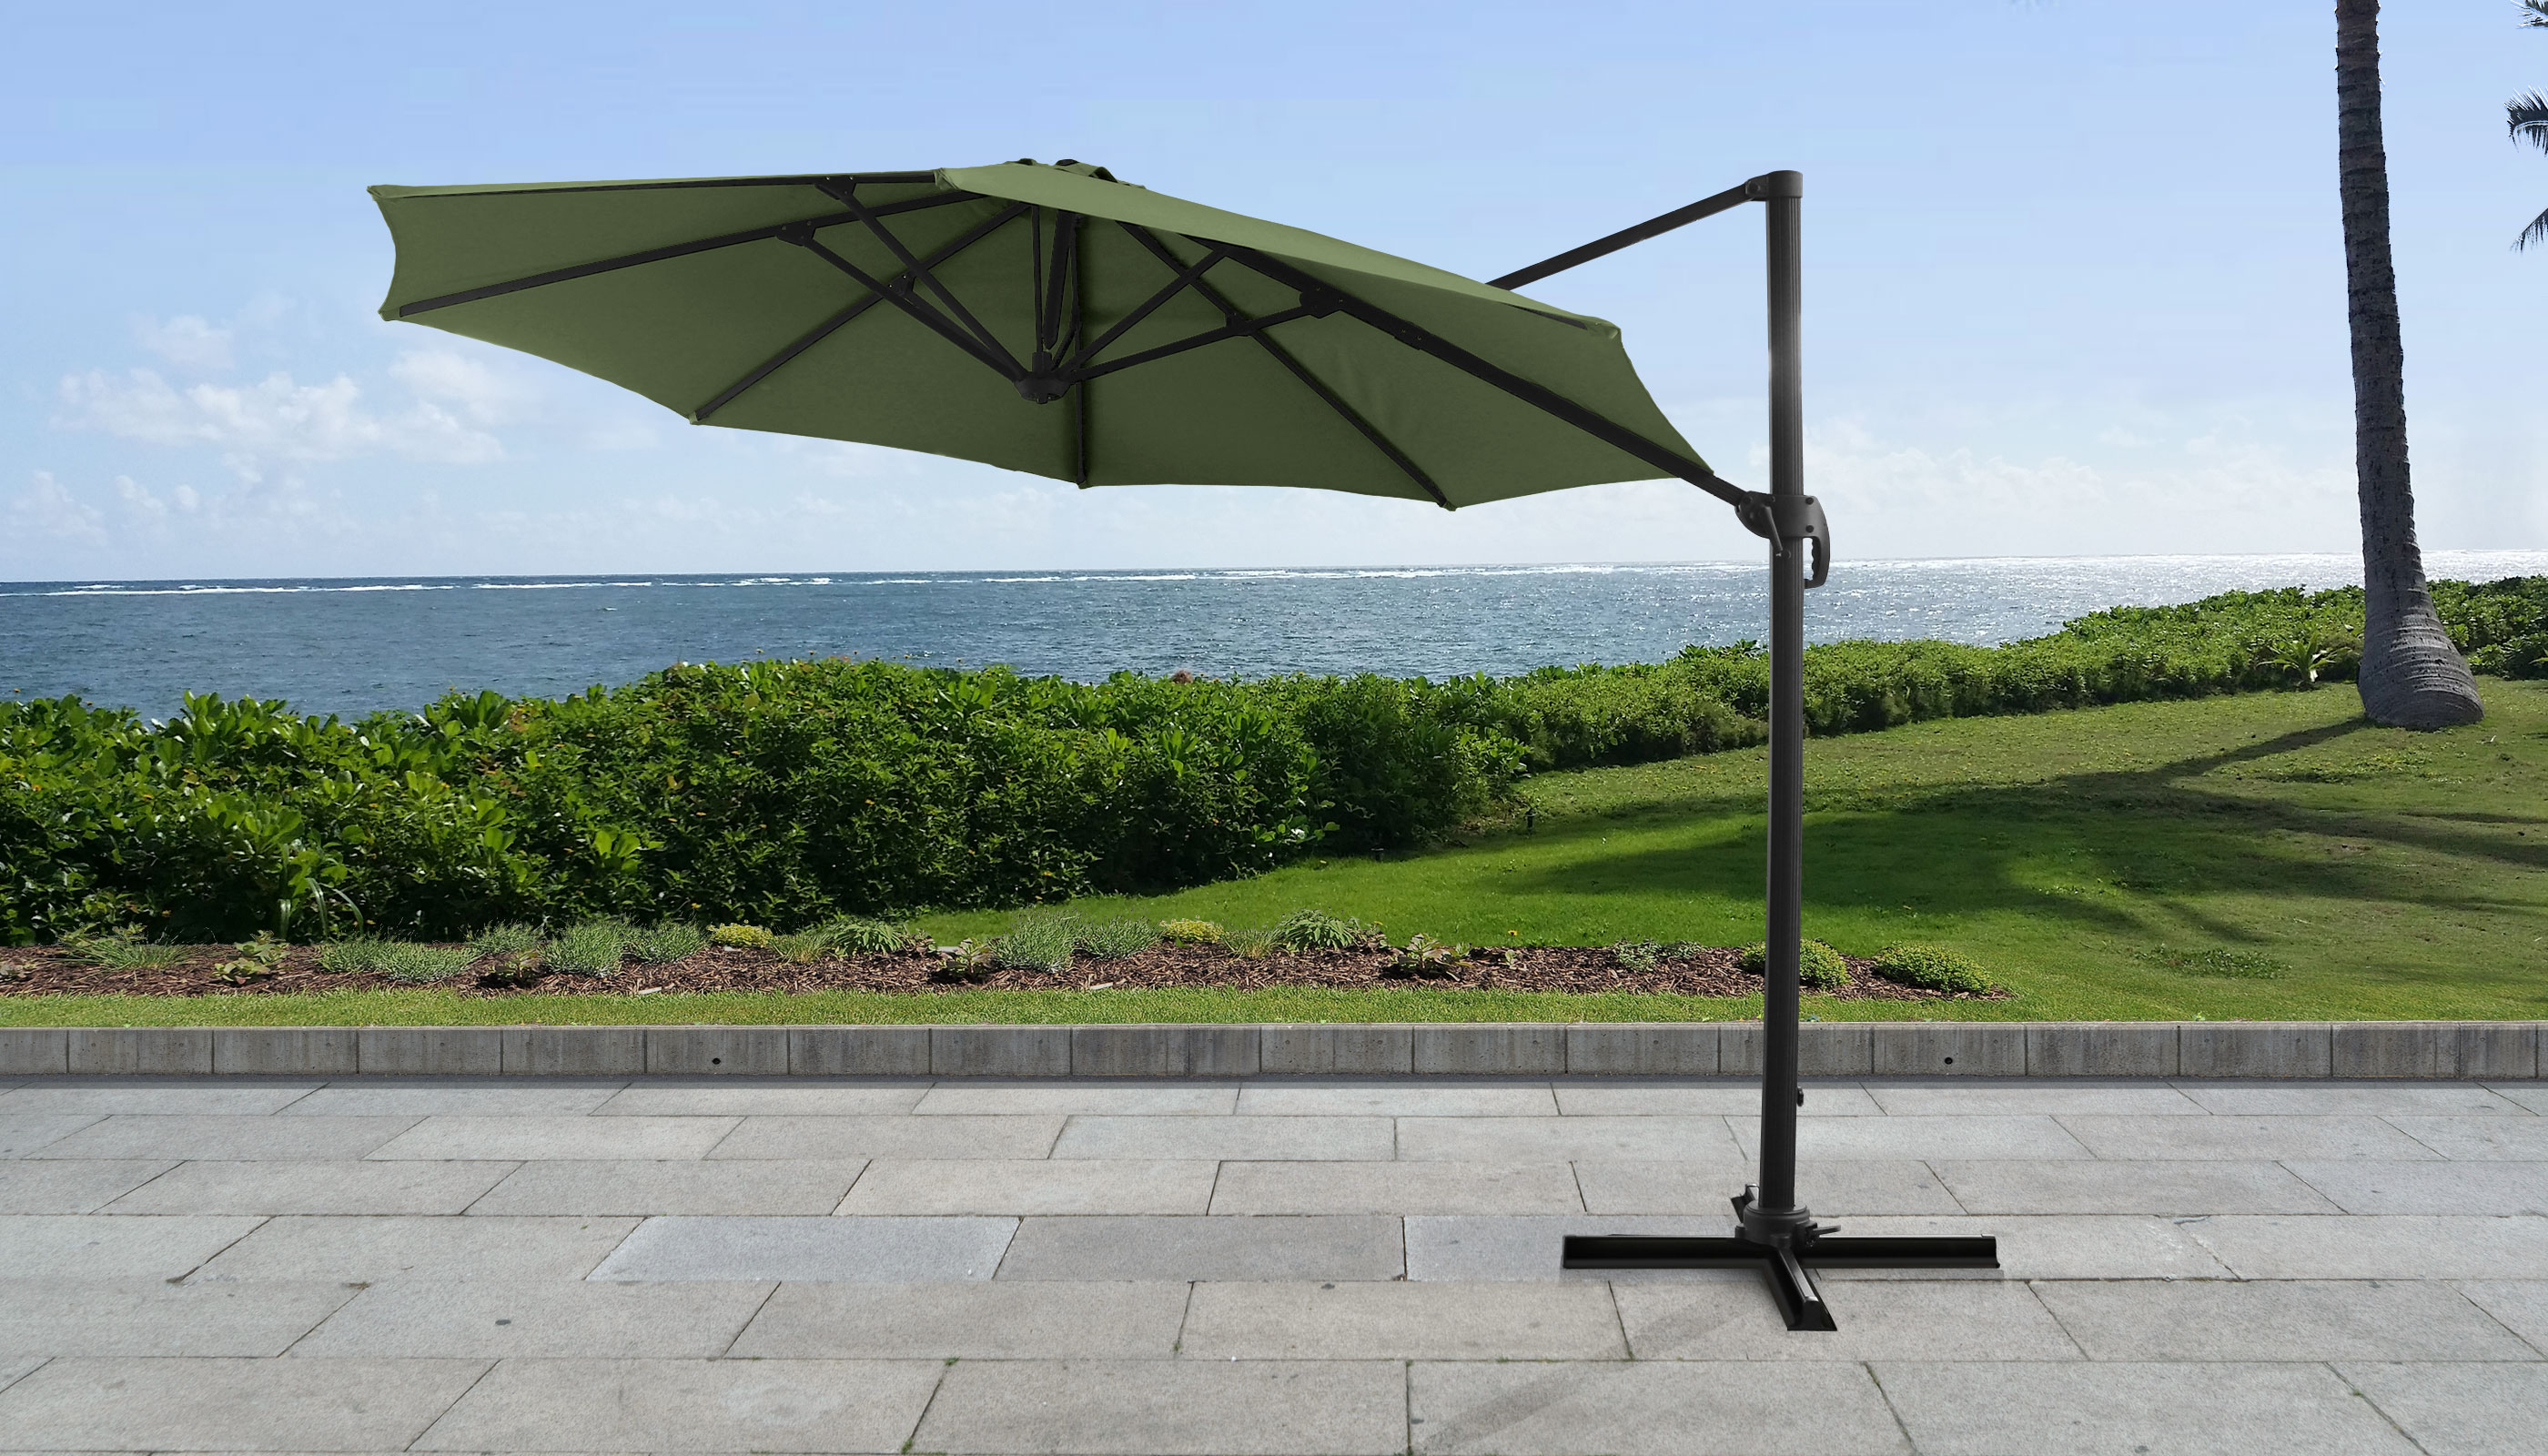 Most Recently Released Cantilever Umbrellas Intended For 11' Octagonal Cantilever Umbrella (View 15 of 20)